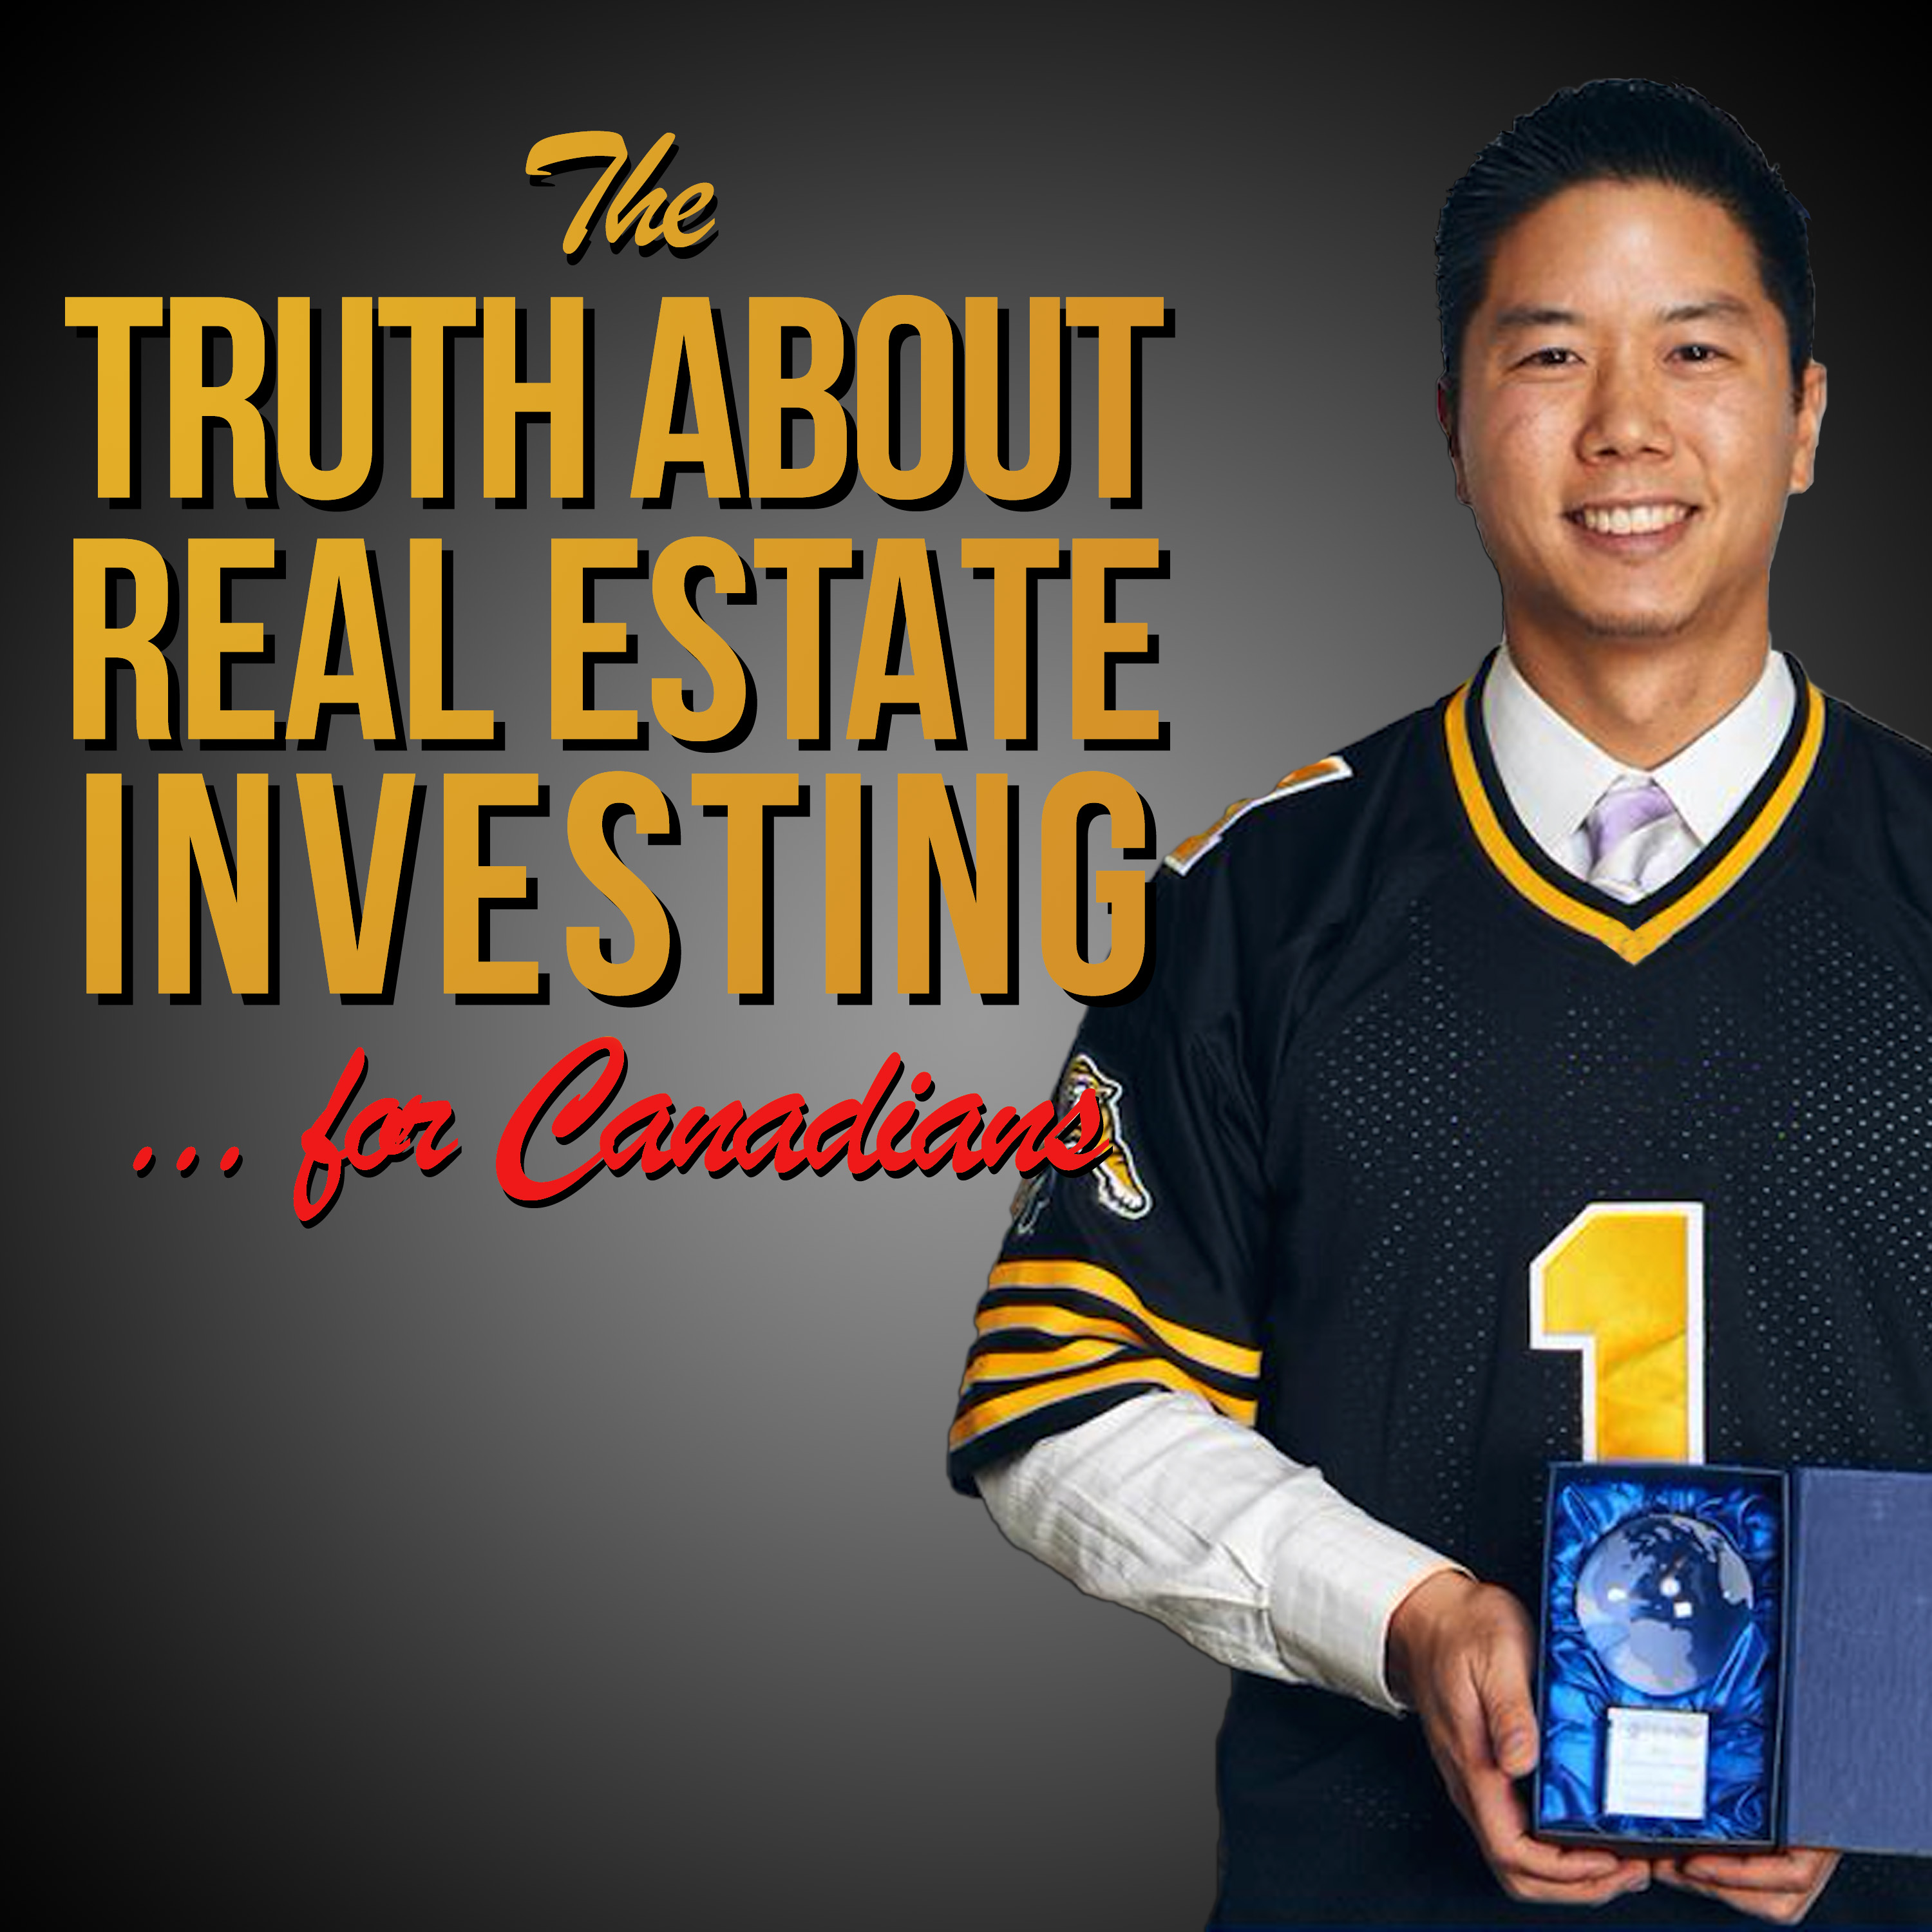 The Truth About Real Estate Investing... for Canadians show art